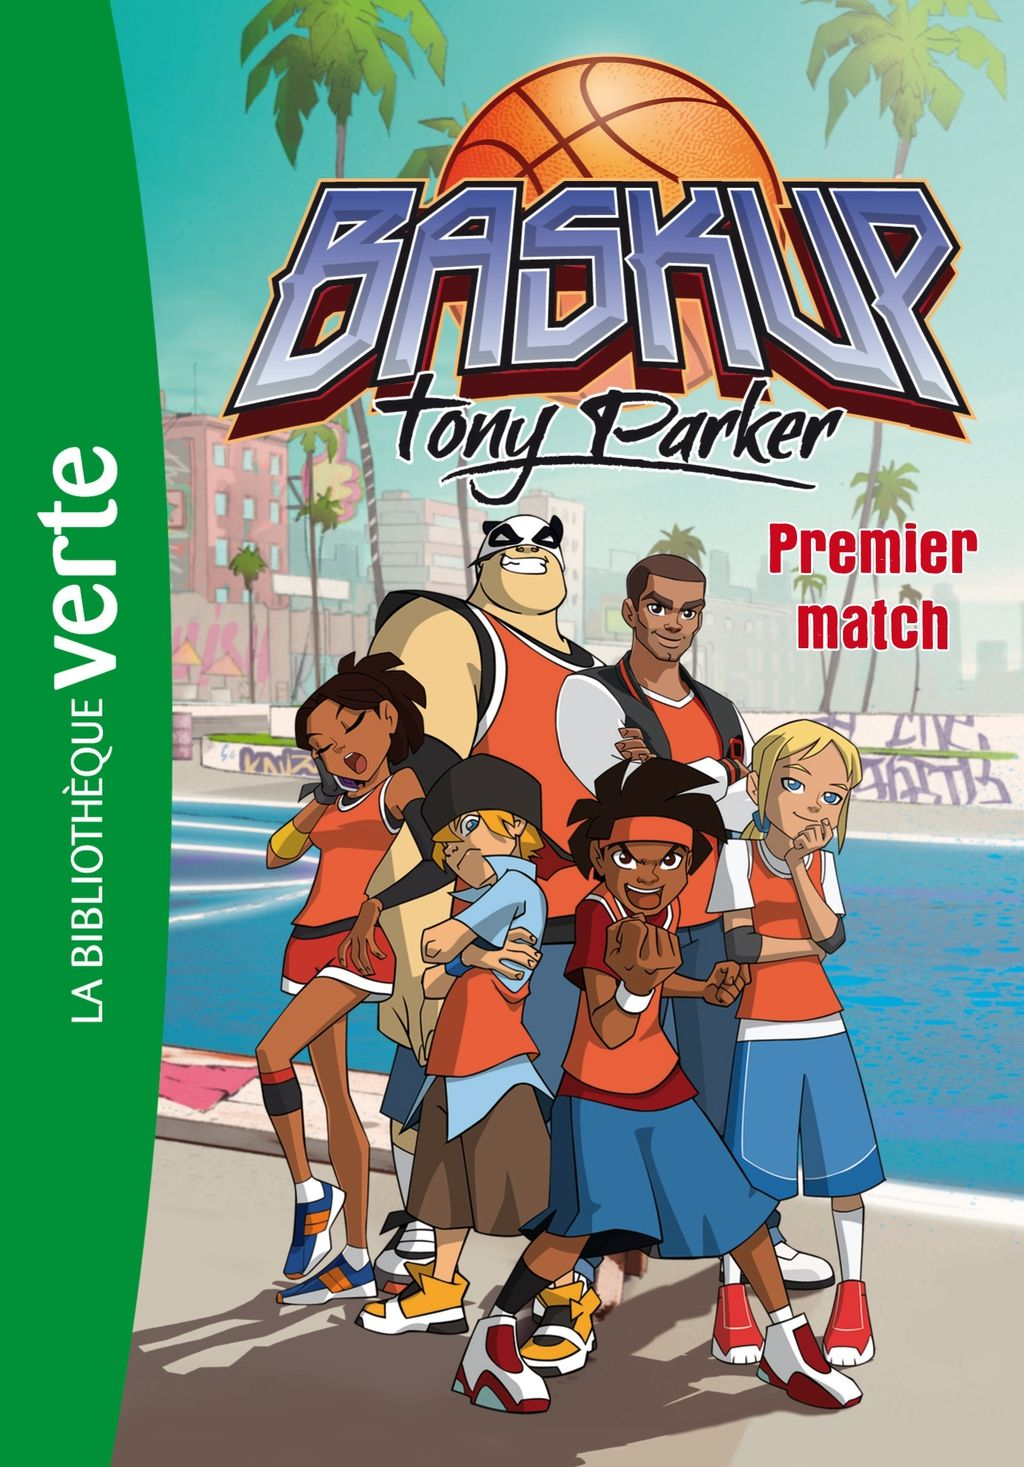 Baskup Tony Parker 01 Premier match (eBook) Cartoon